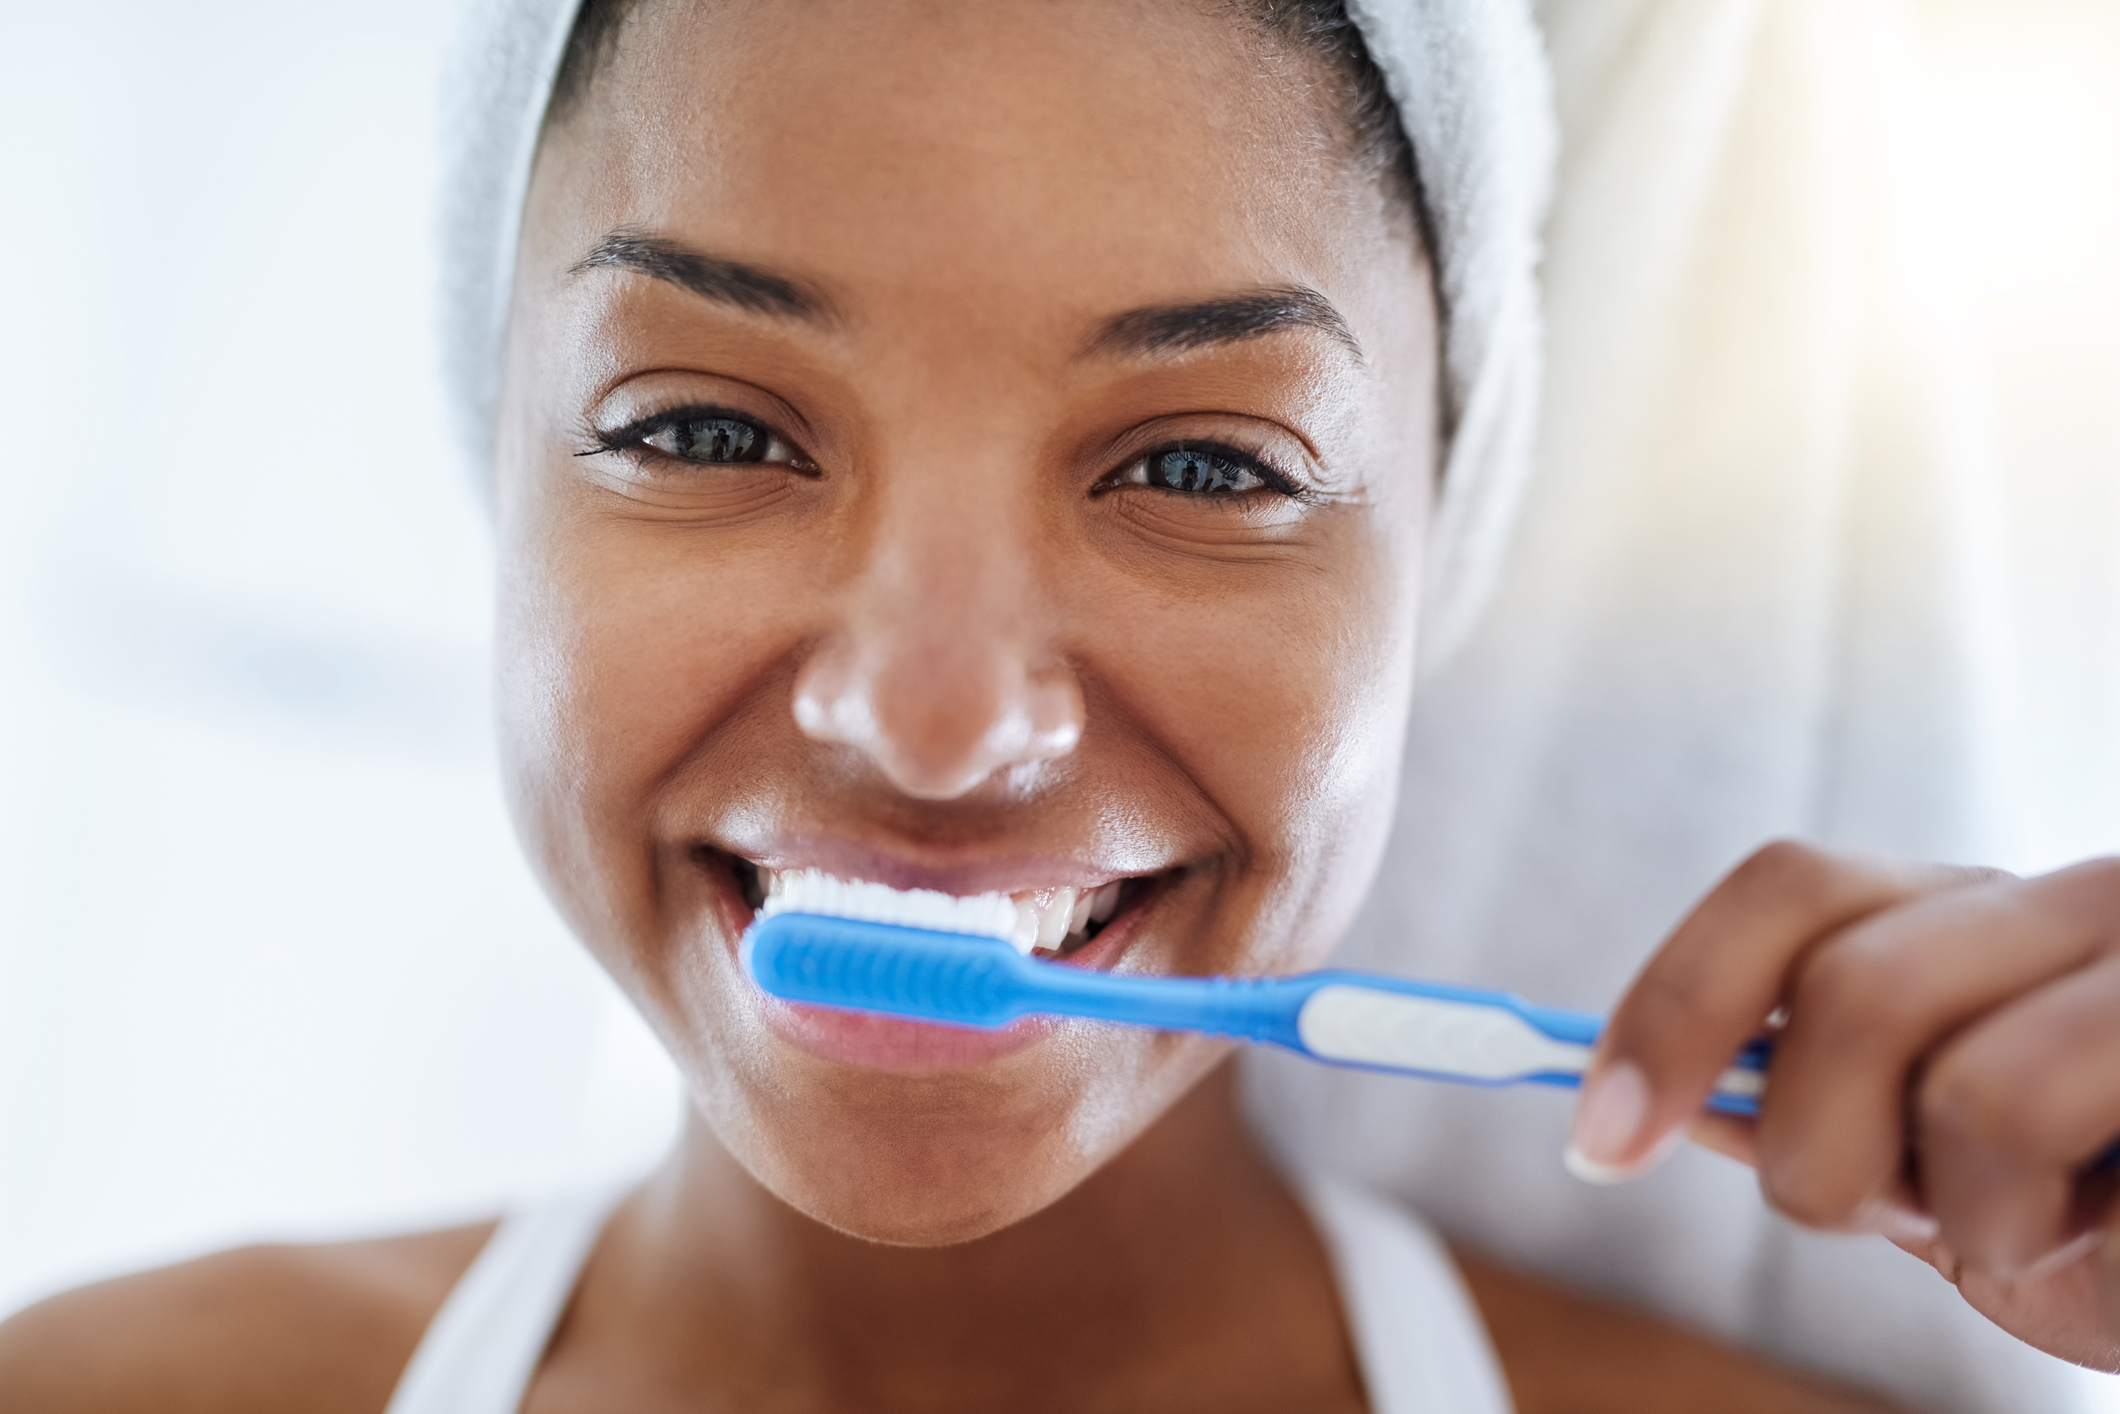 Get brushing for a bright smile